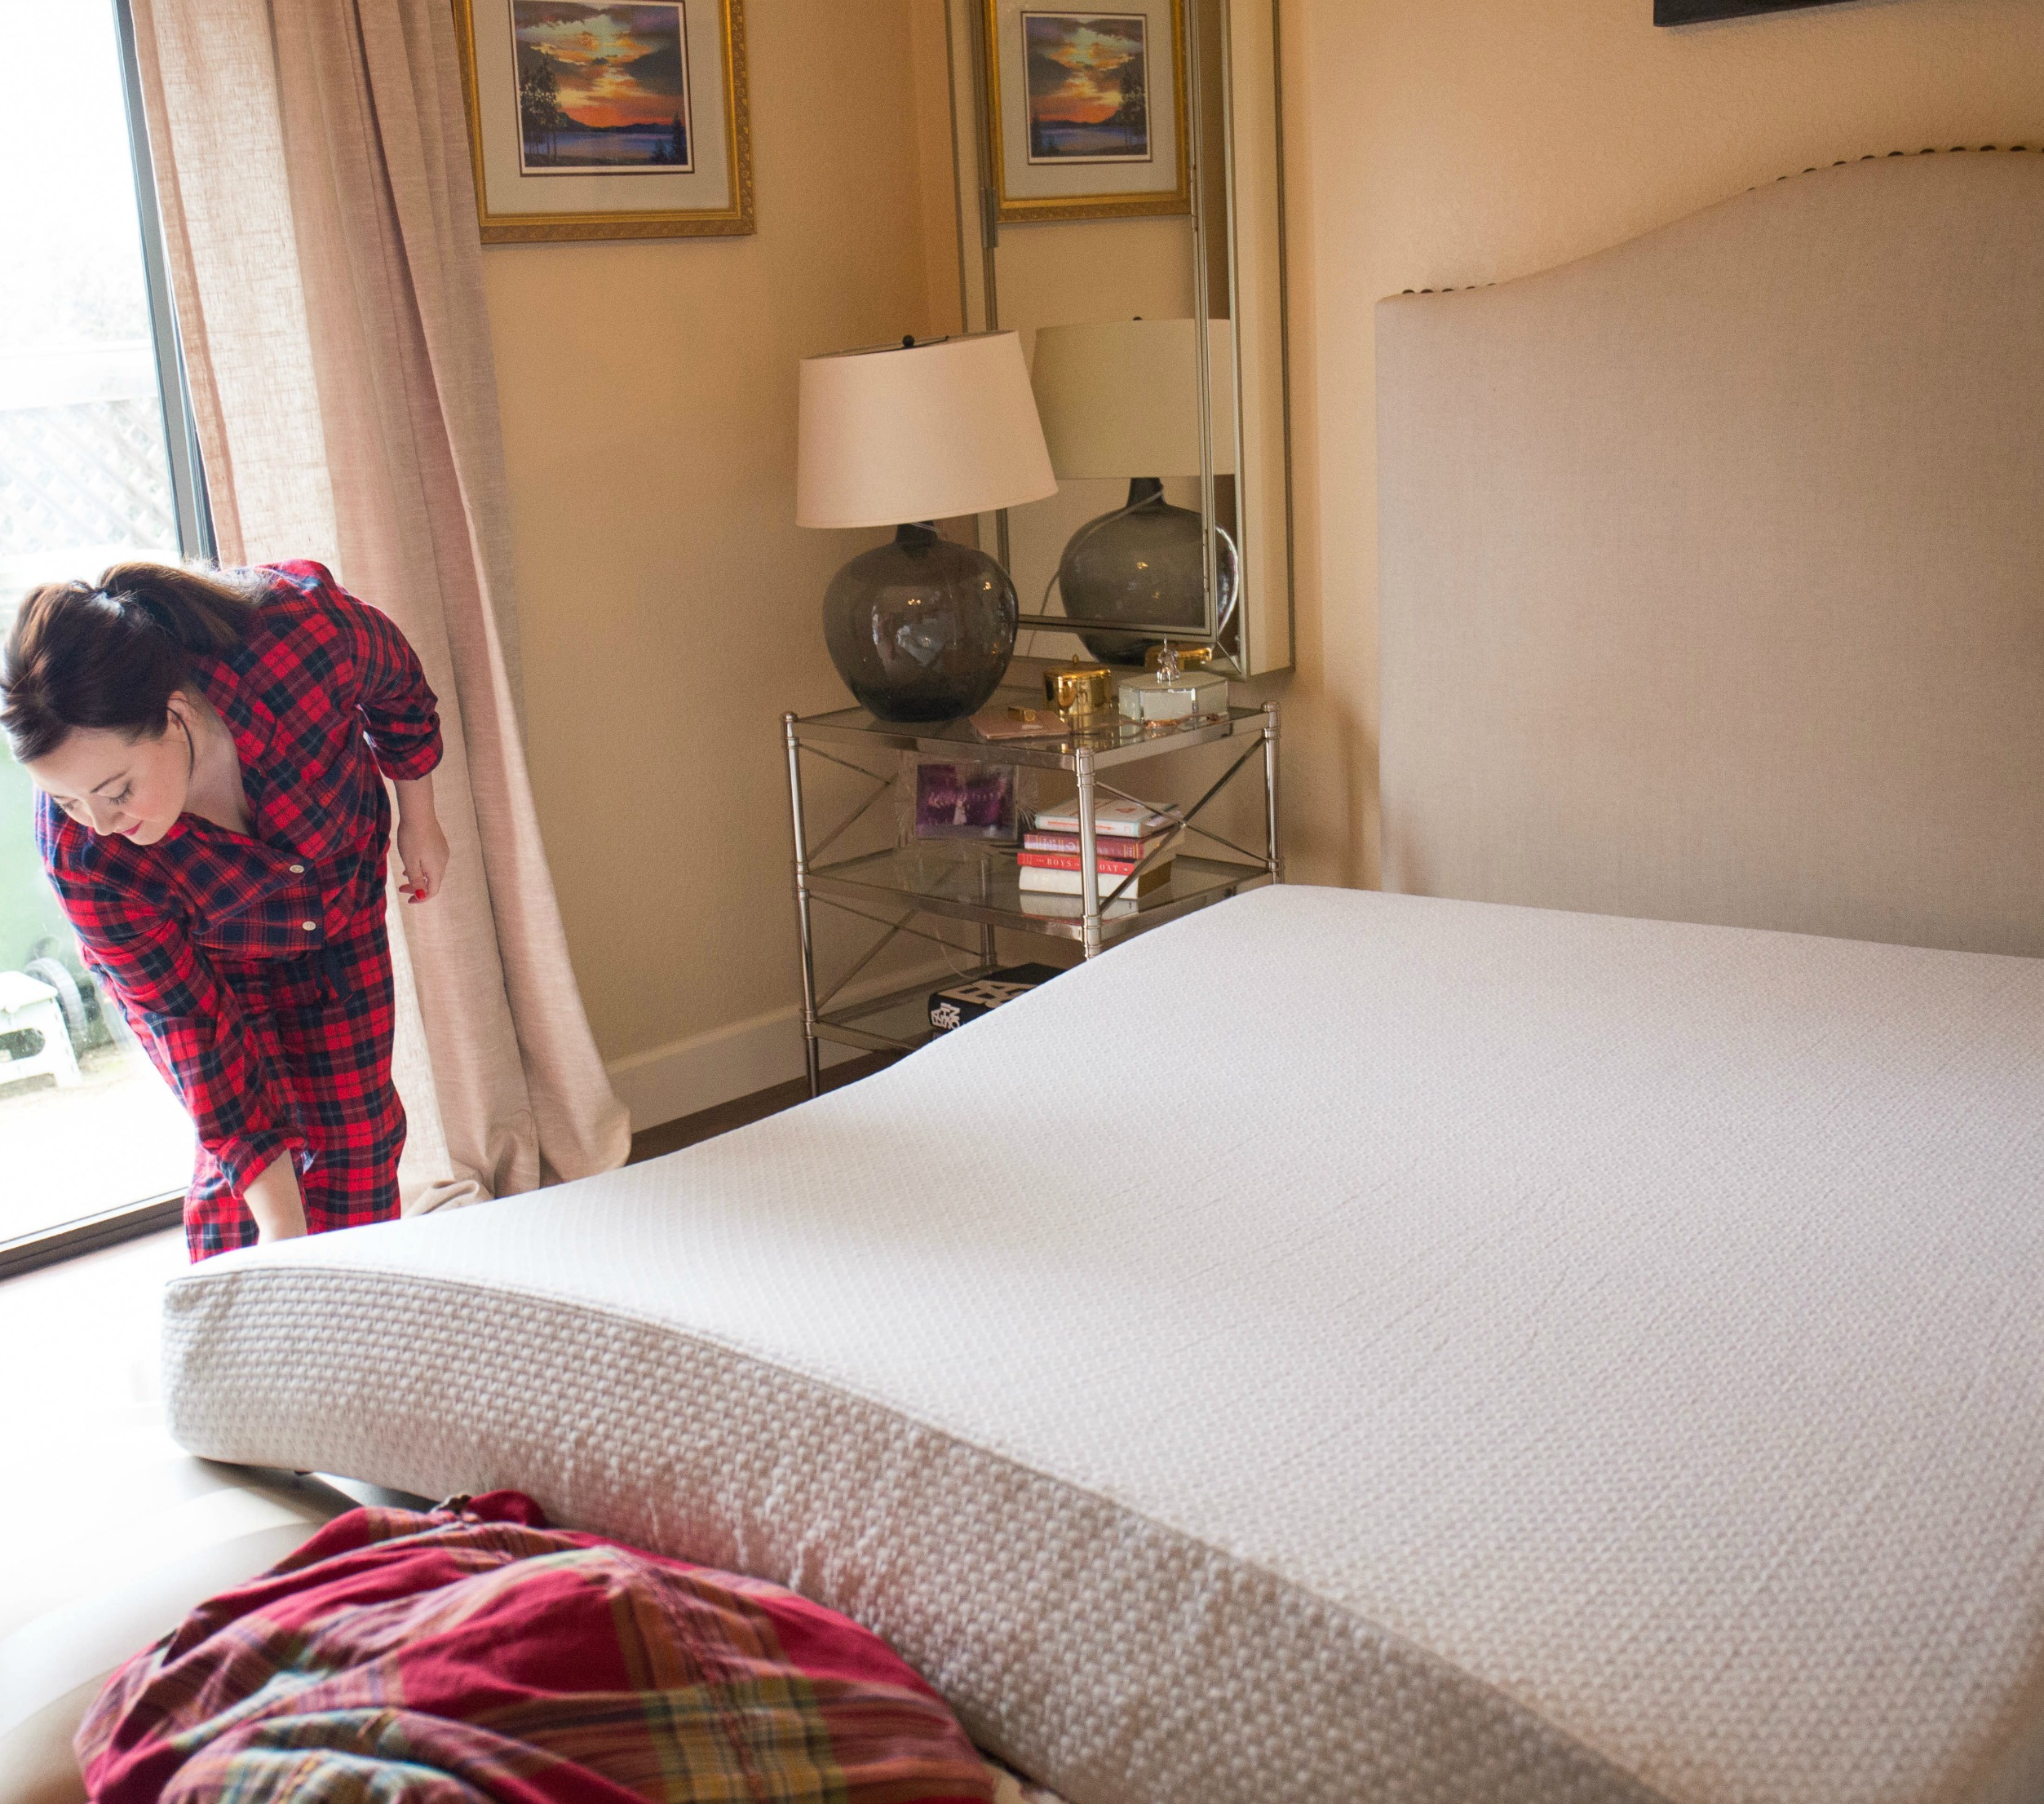 IT Bed by Sleep Number - Sleep Number Mattress Review featured by popular California lifestyle blogger, Haute Beauty Guide.